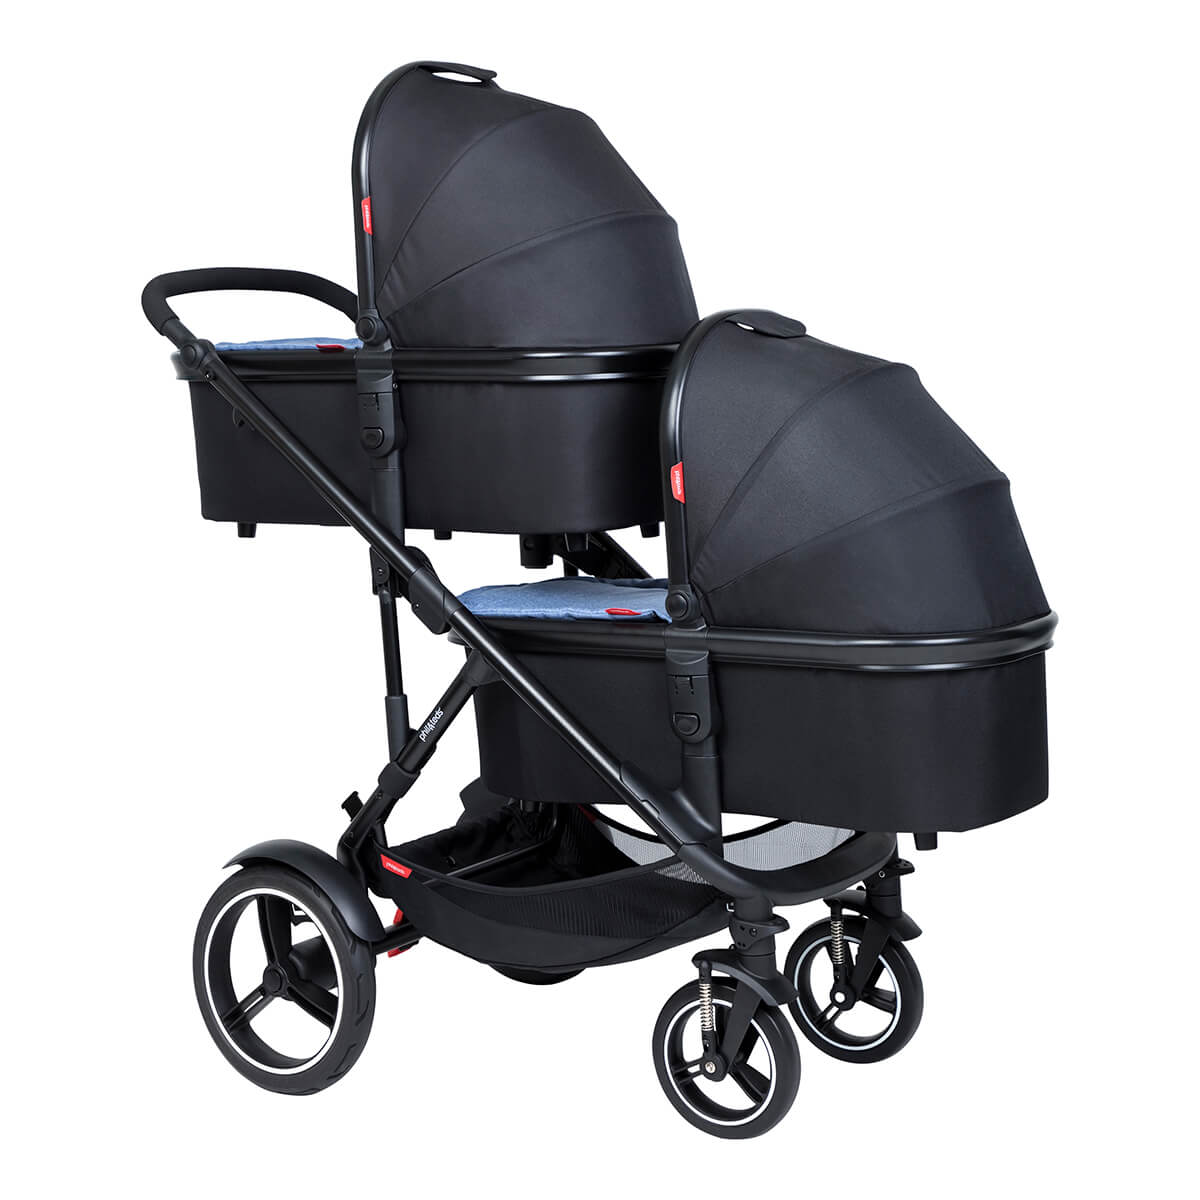 https://cdn.accentuate.io/4394883809385/19119322923113/philteds-voyager-inline-buggy-with-double-snug-carrycots-v1625630676969.jpg?1200x1200